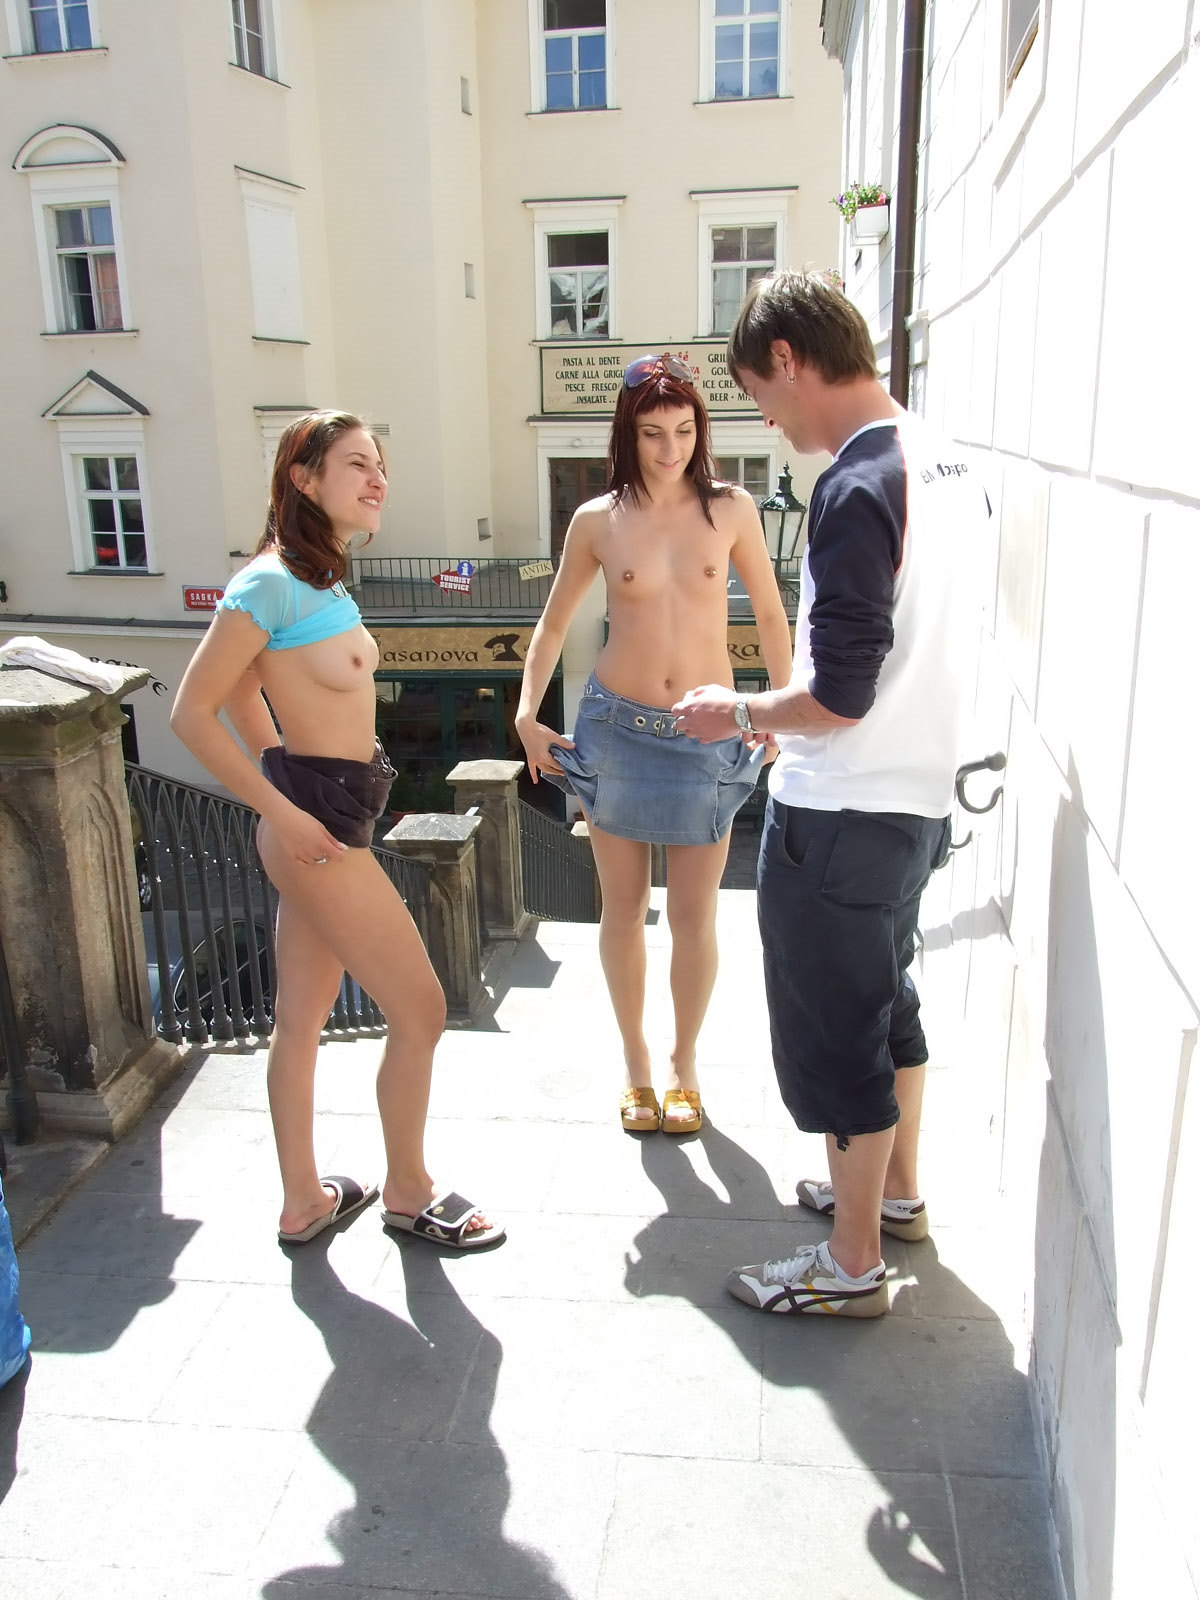 Good question Naked girls stripp videos public really. was